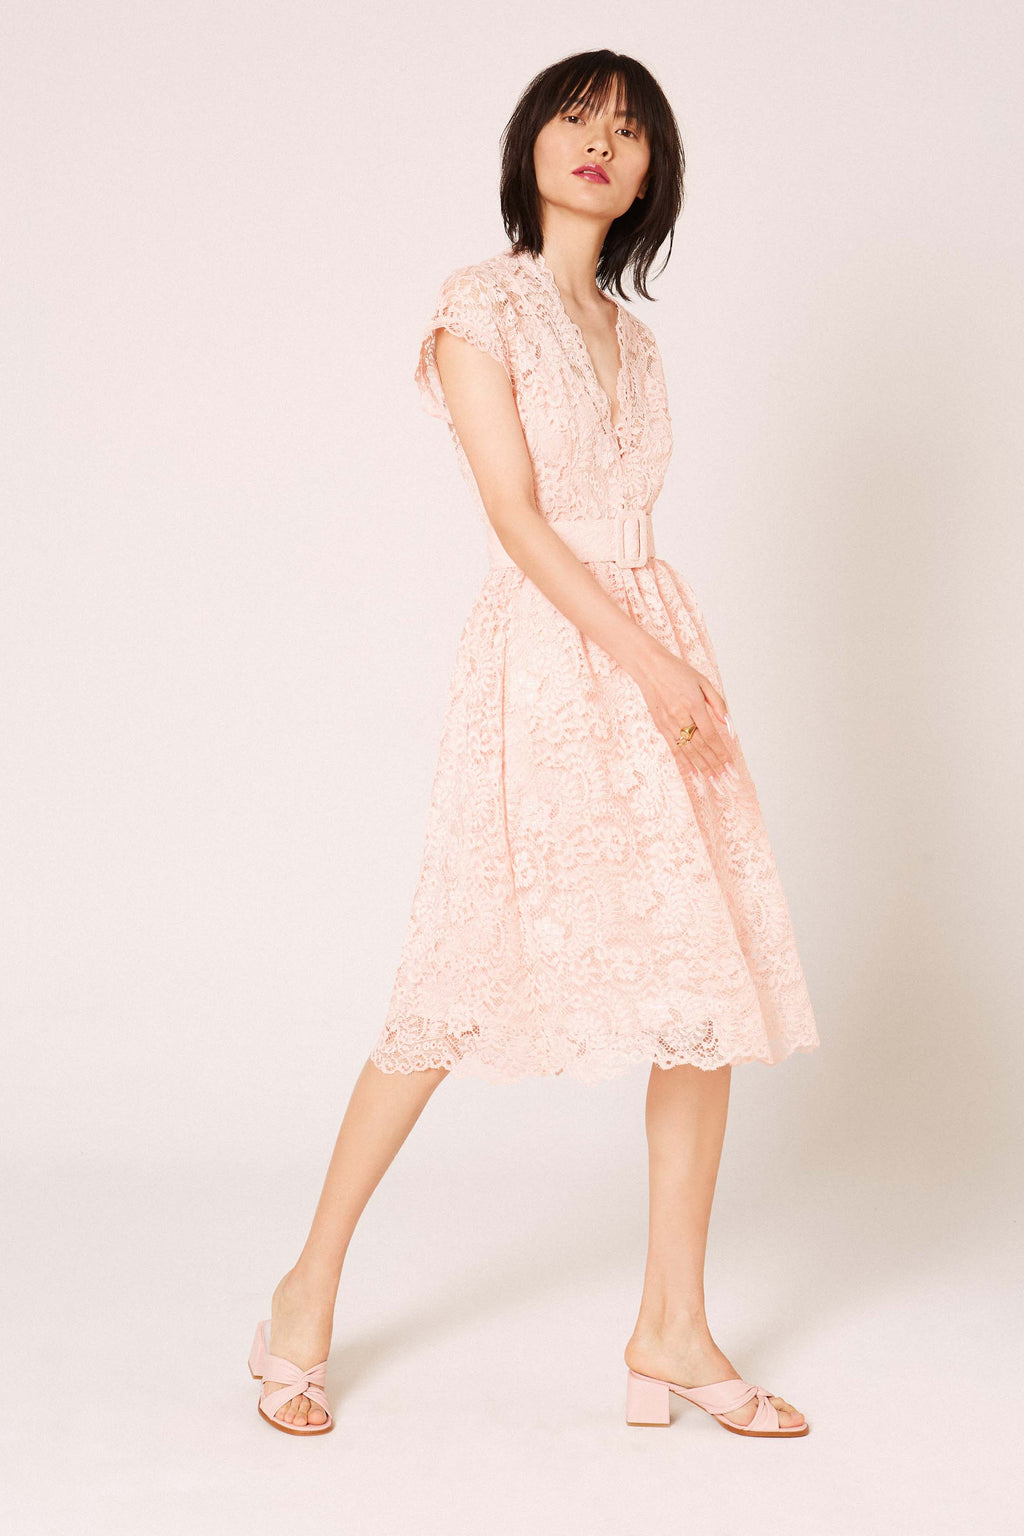 Amet Nude Dress - Etxart & Panno USA